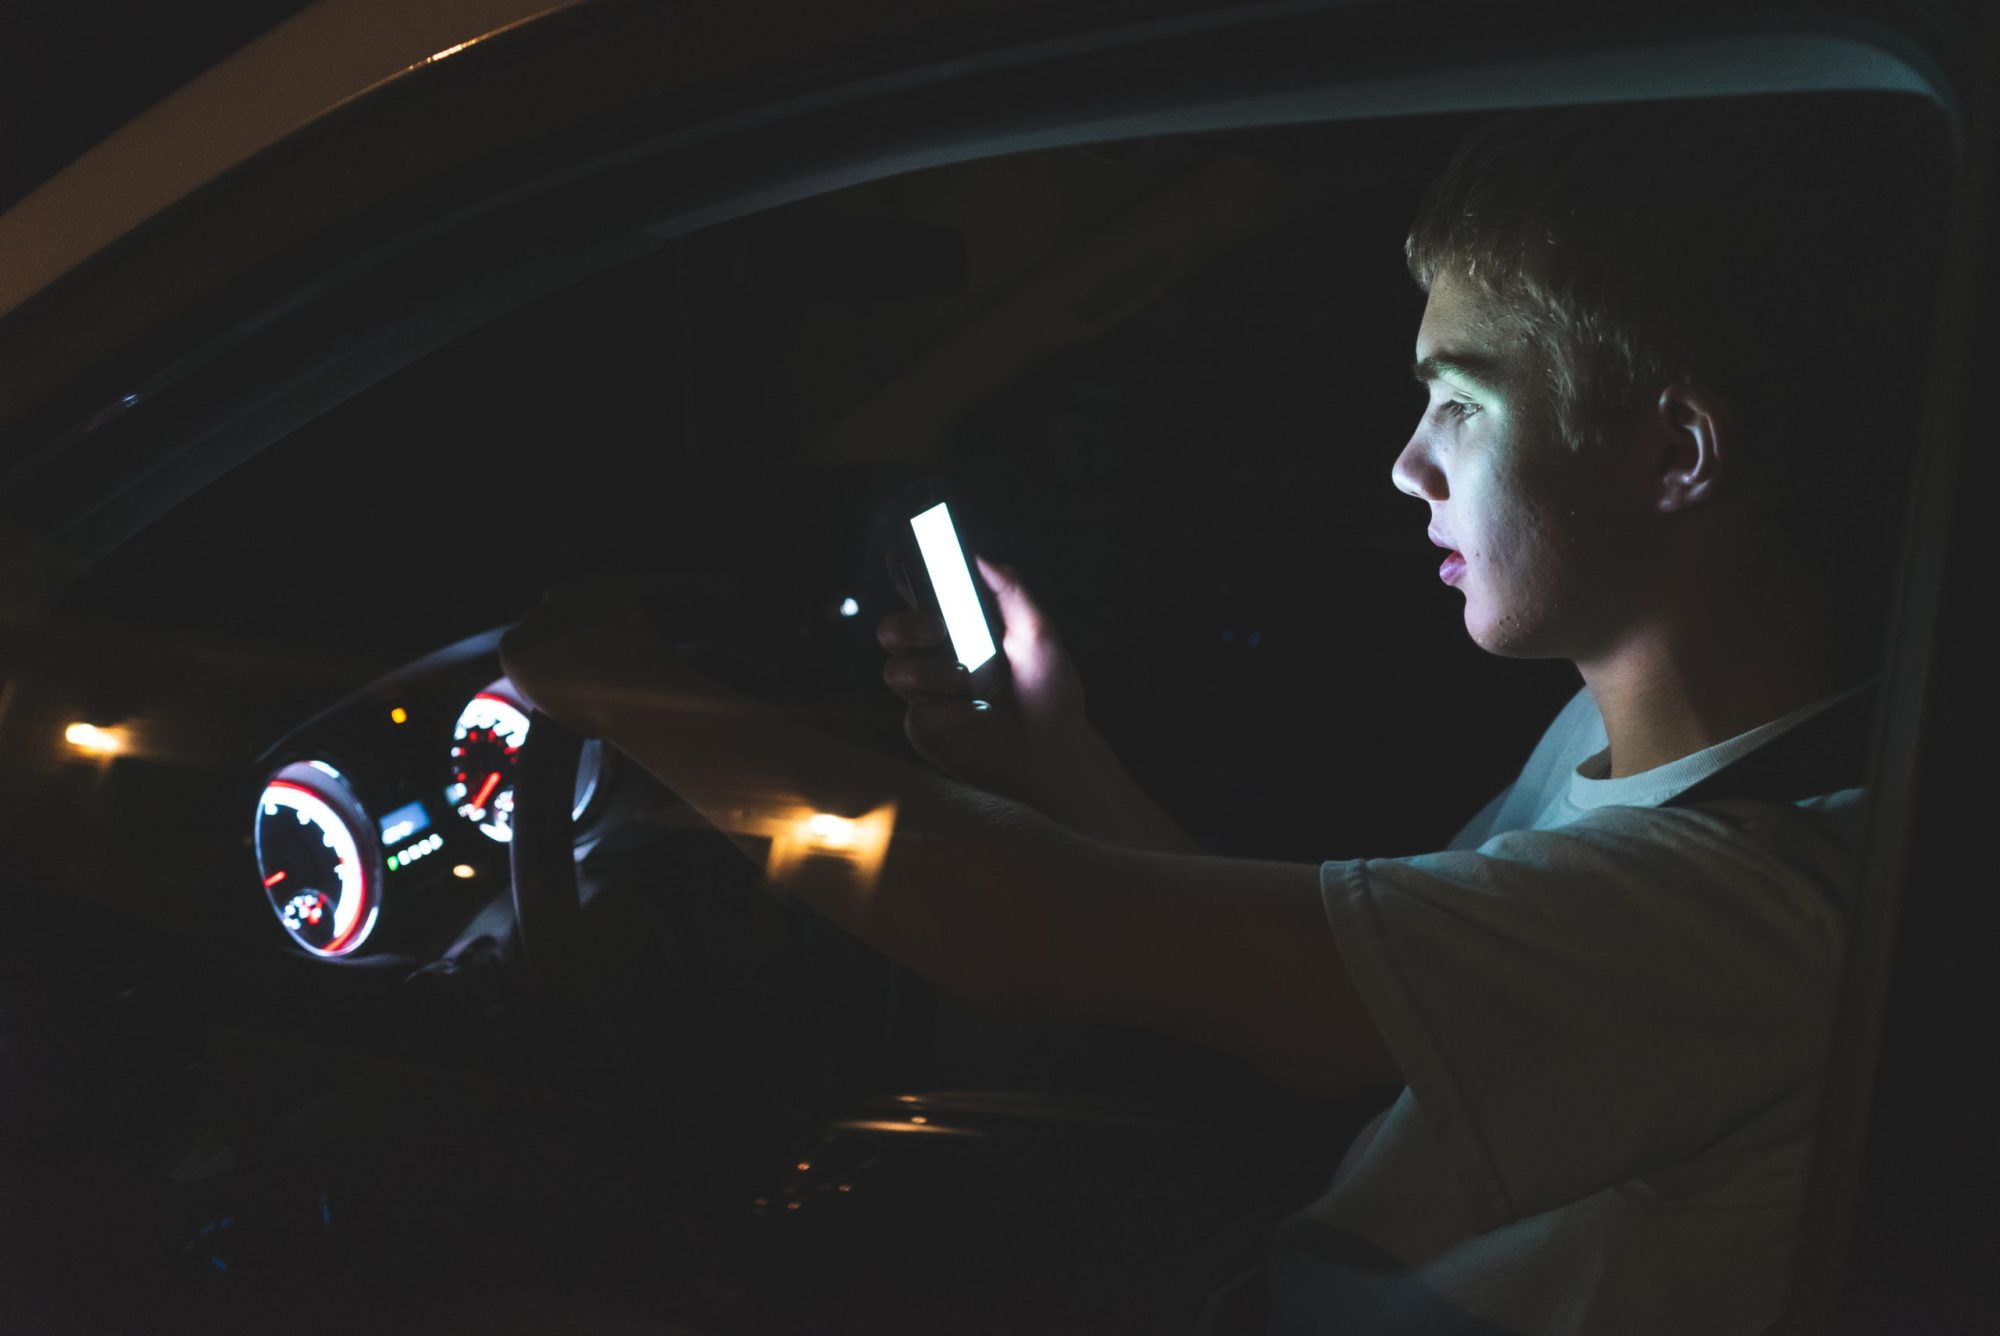 distracted-teenage-driver-on-cell-phone